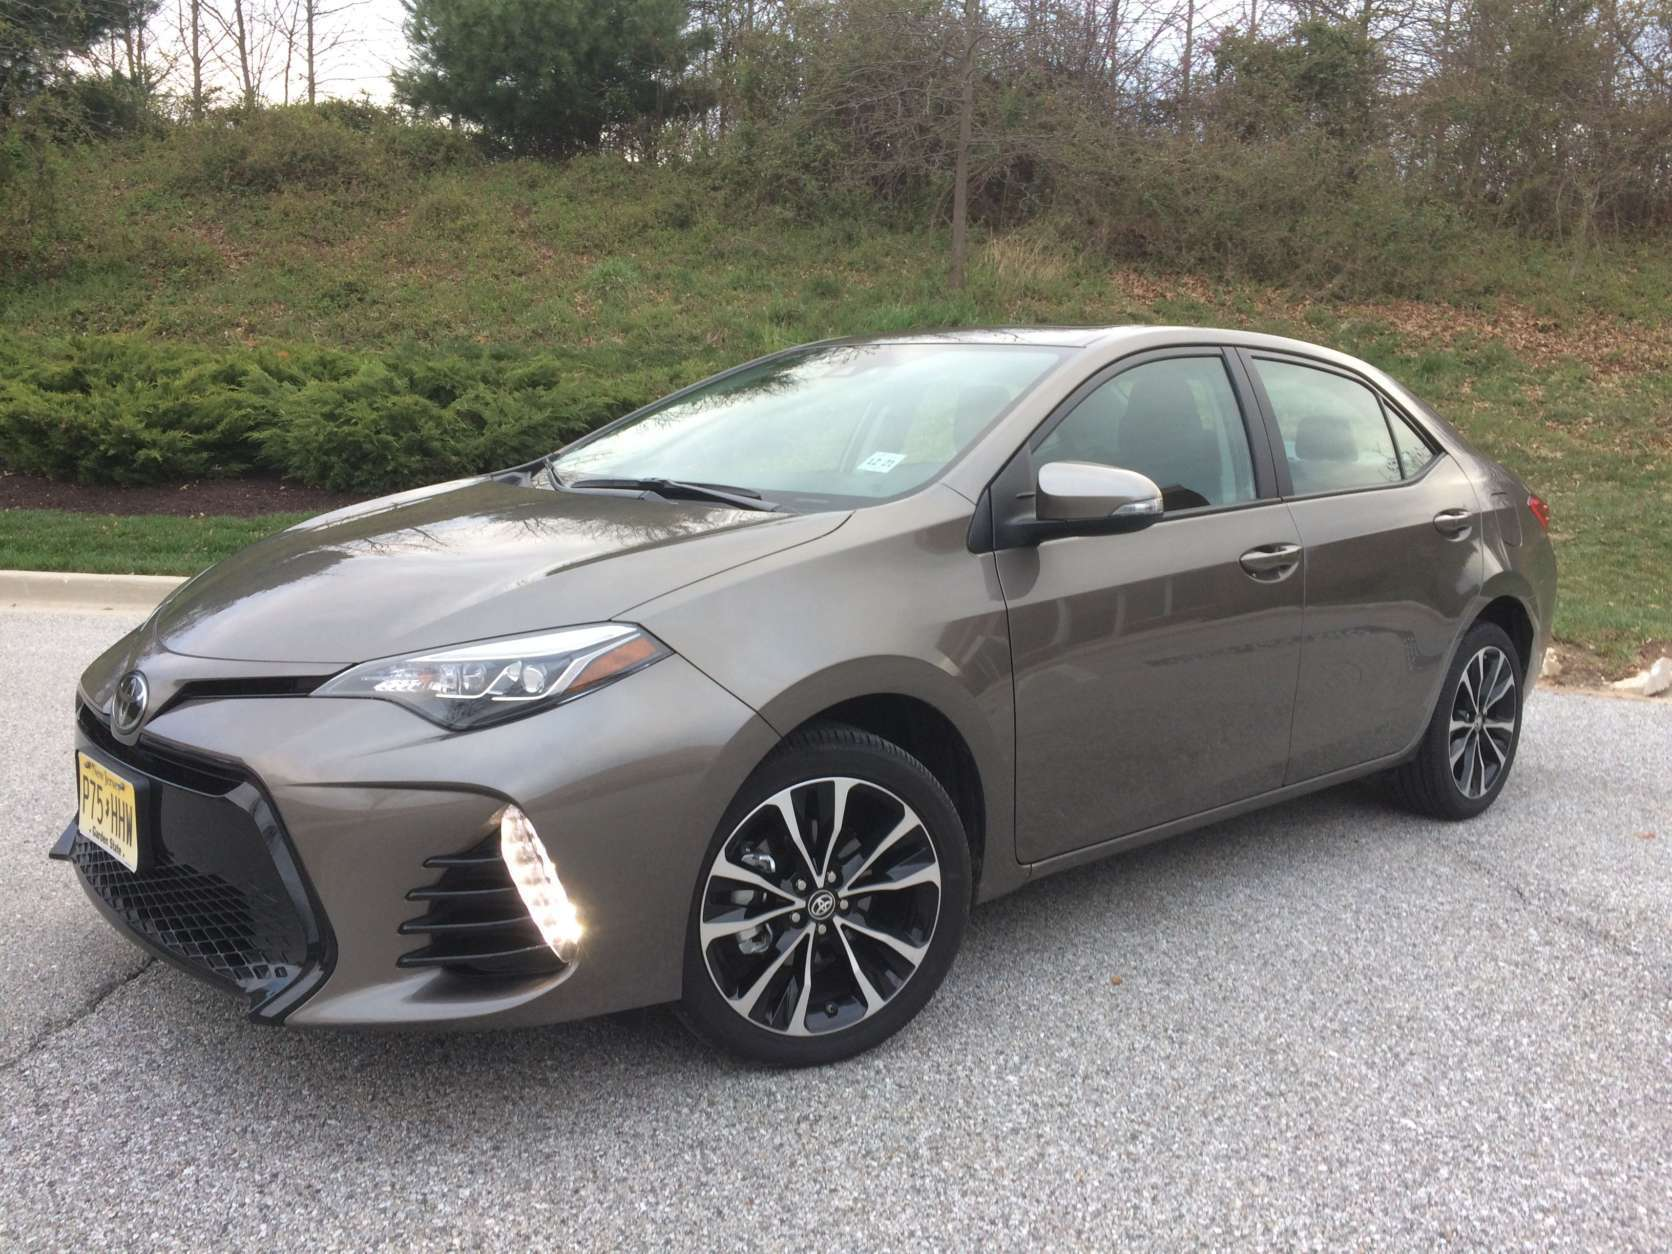 Car guy Mike Parris says the Toyota Corolla XSE is a roomy compact sedan with a stylish interior. (WTOP/Mike Parris)